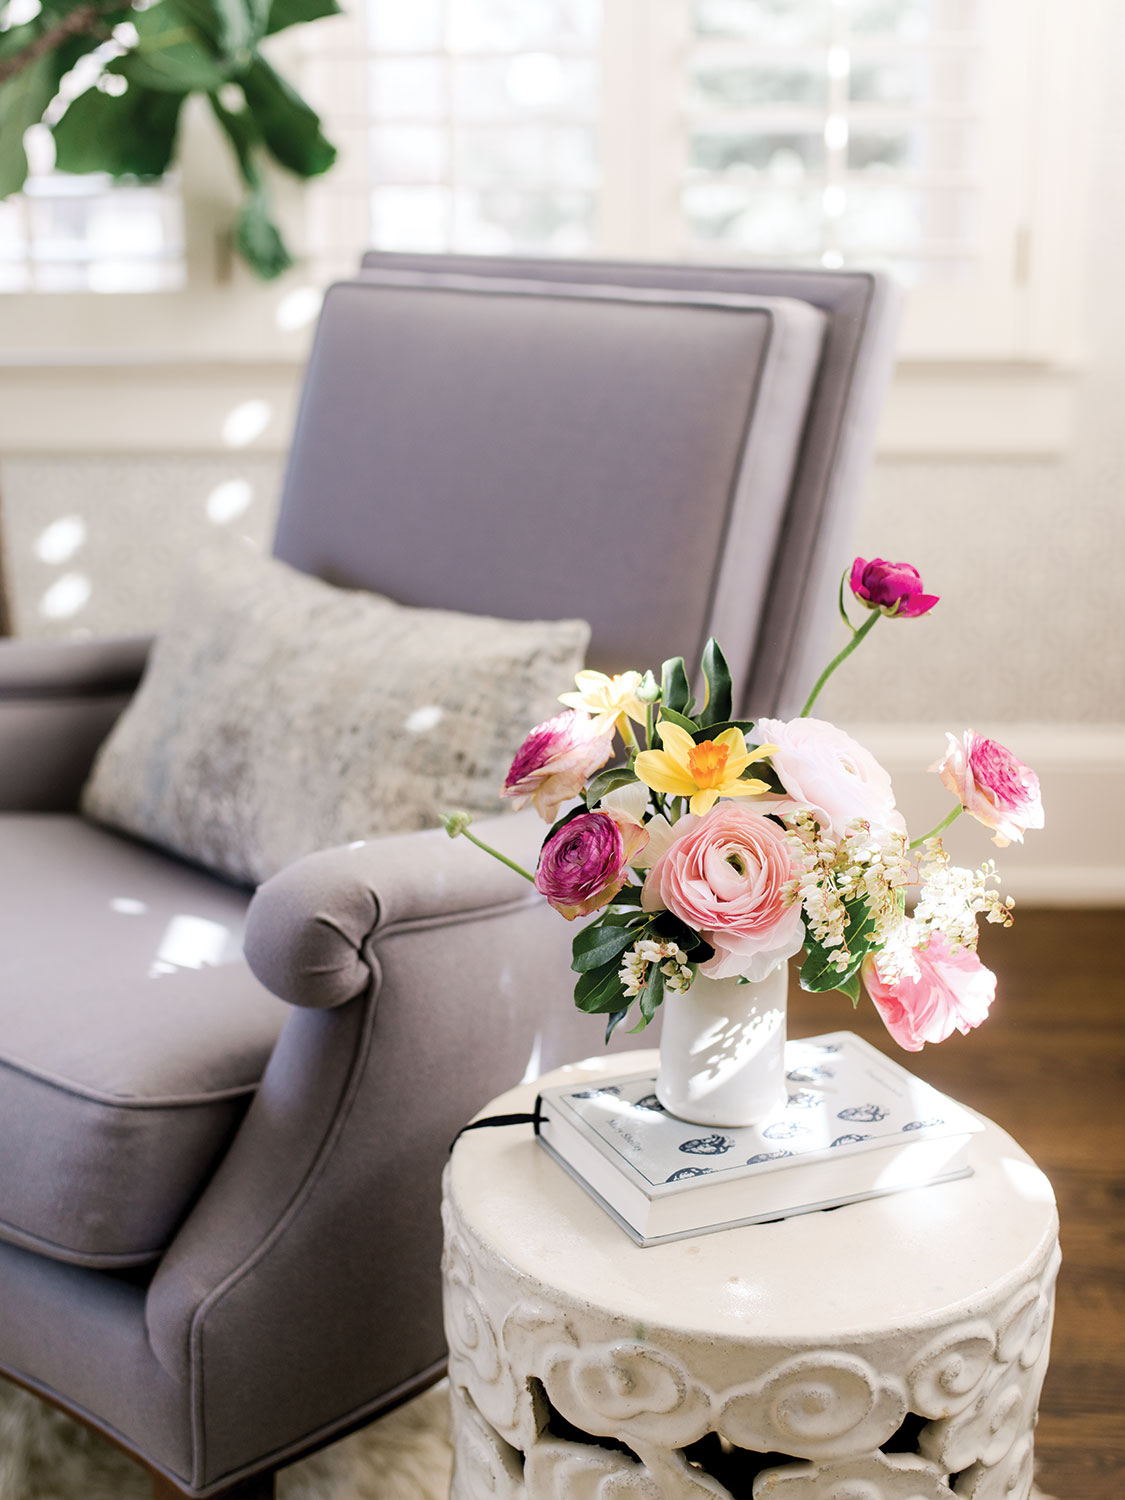 A white pottery garden stool serves as a side table beside an upholstered pale purple armchair in a room designed by Alecia Stevens